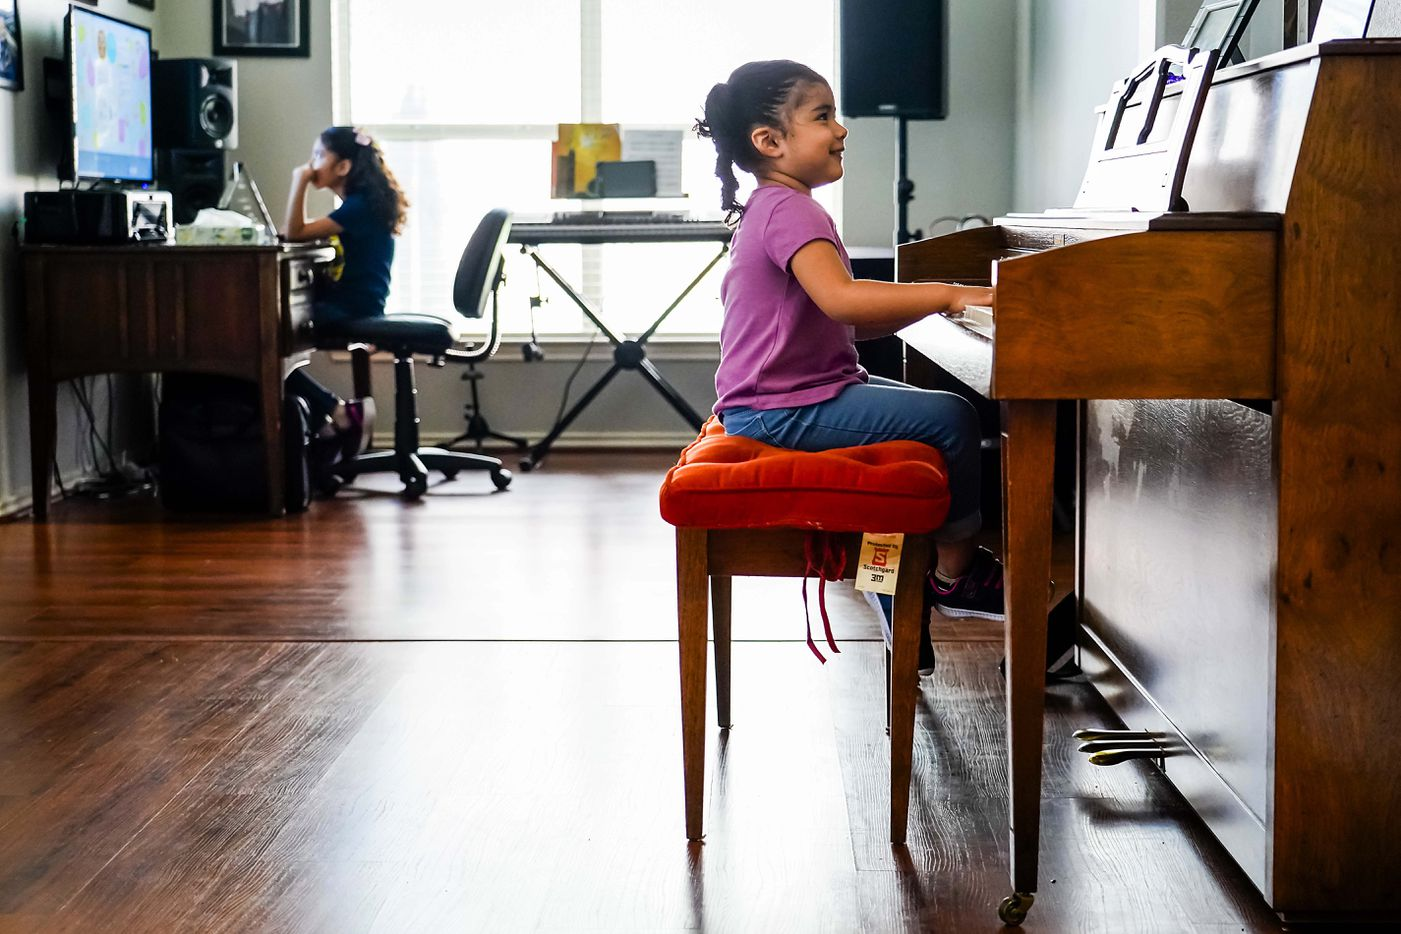 Kamila Cabrera, 4, plays the piano as her sister Selena Cabrera, 9, does school work on a computer at the family's home in Grand Prairie.